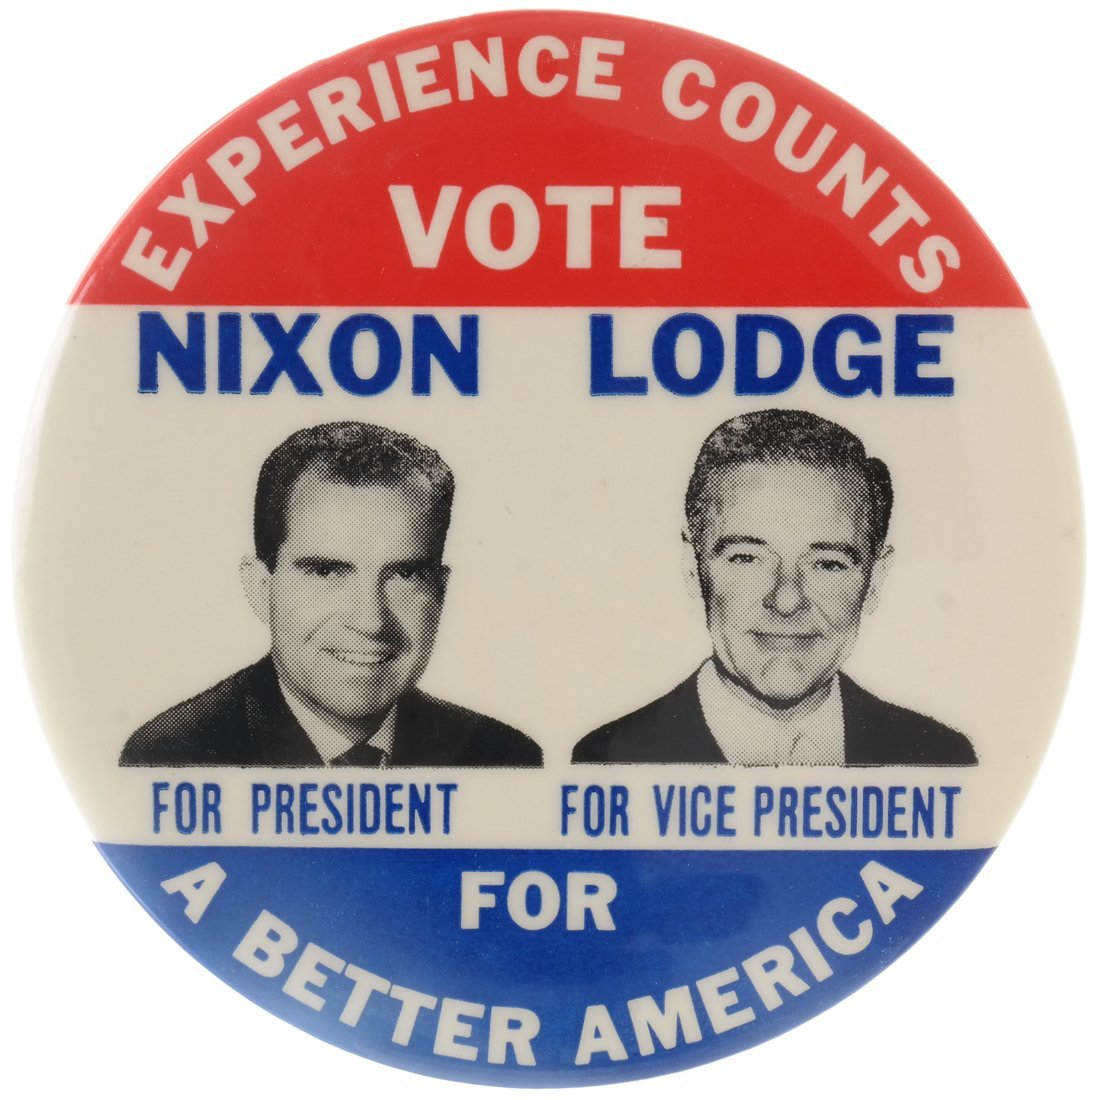 Rare Nixon & Lodge Jugate Celluloid